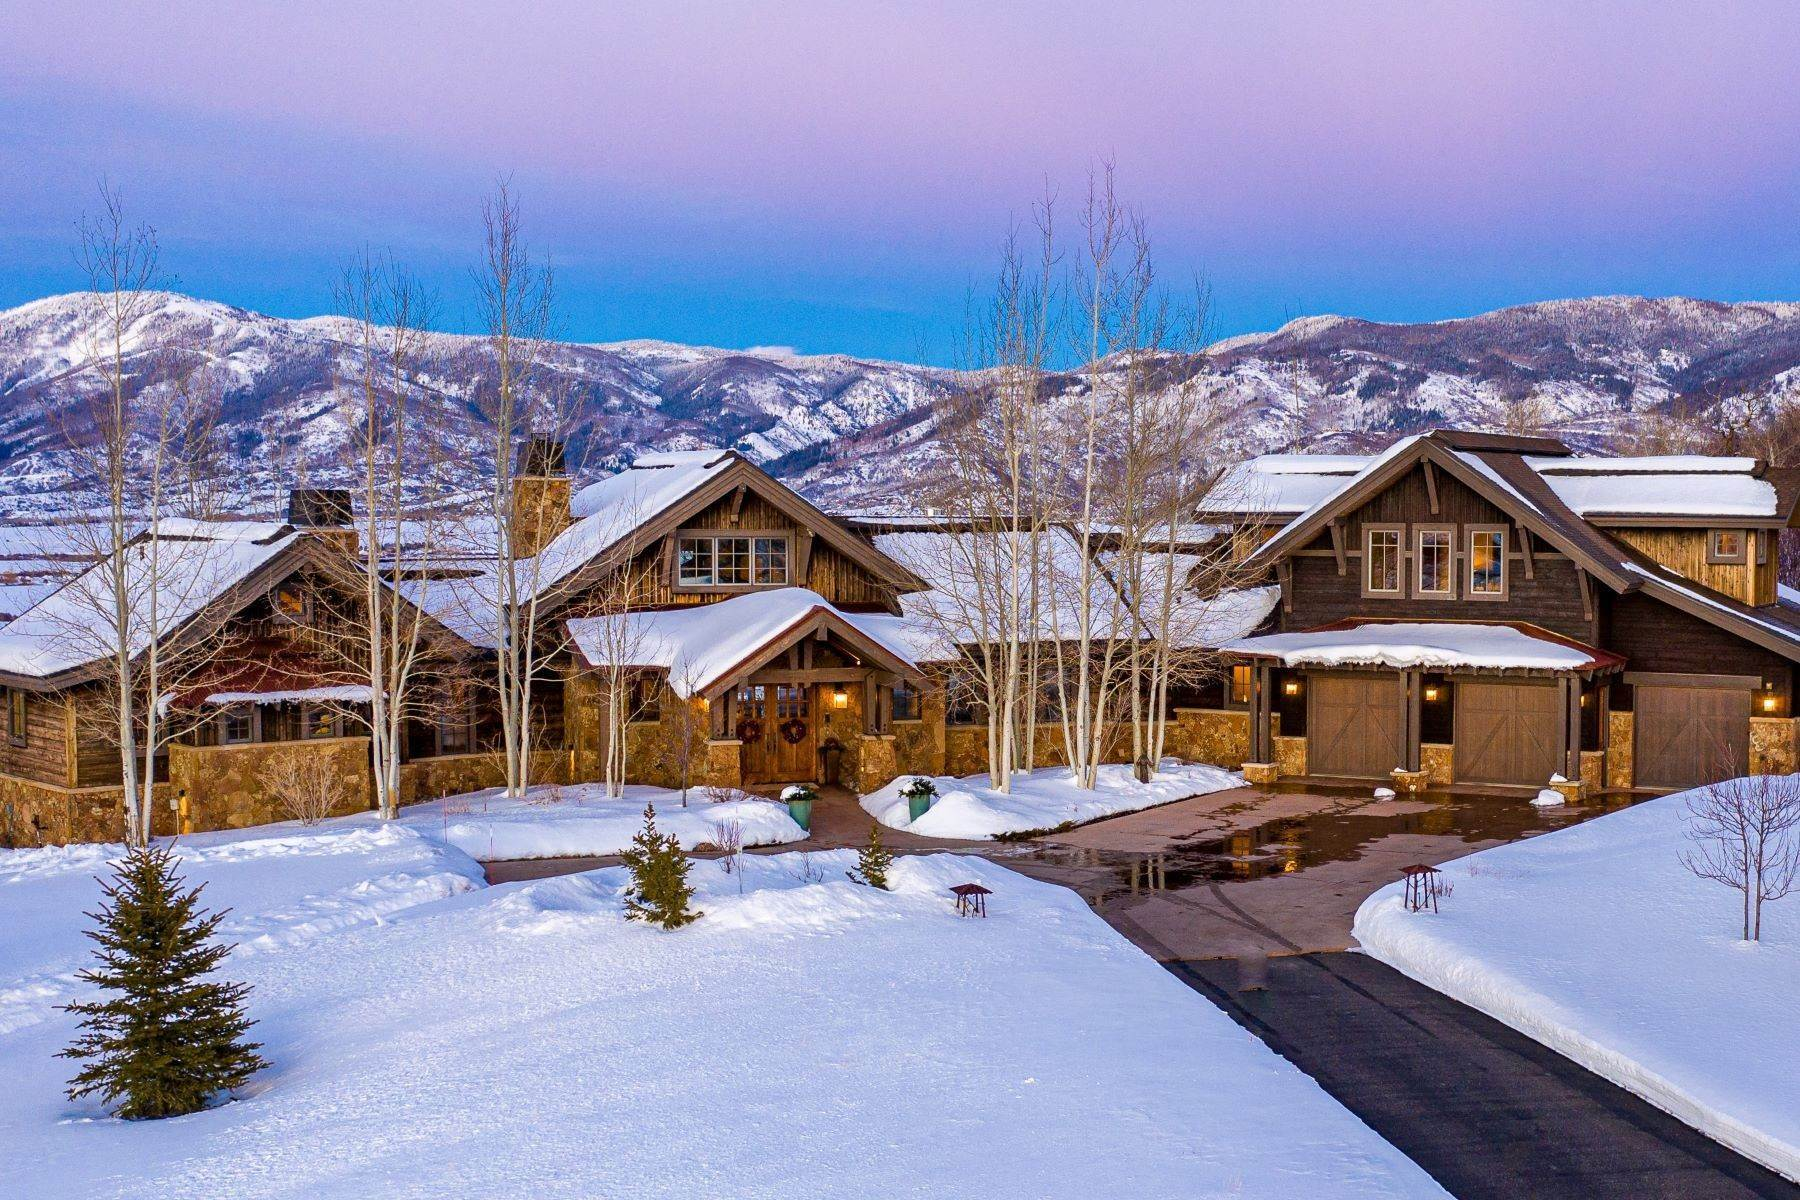 Single Family Homes for Sale at Sidney Peak View Home 30650 Marshall Ridge Steamboat Springs, Colorado 80487 United States